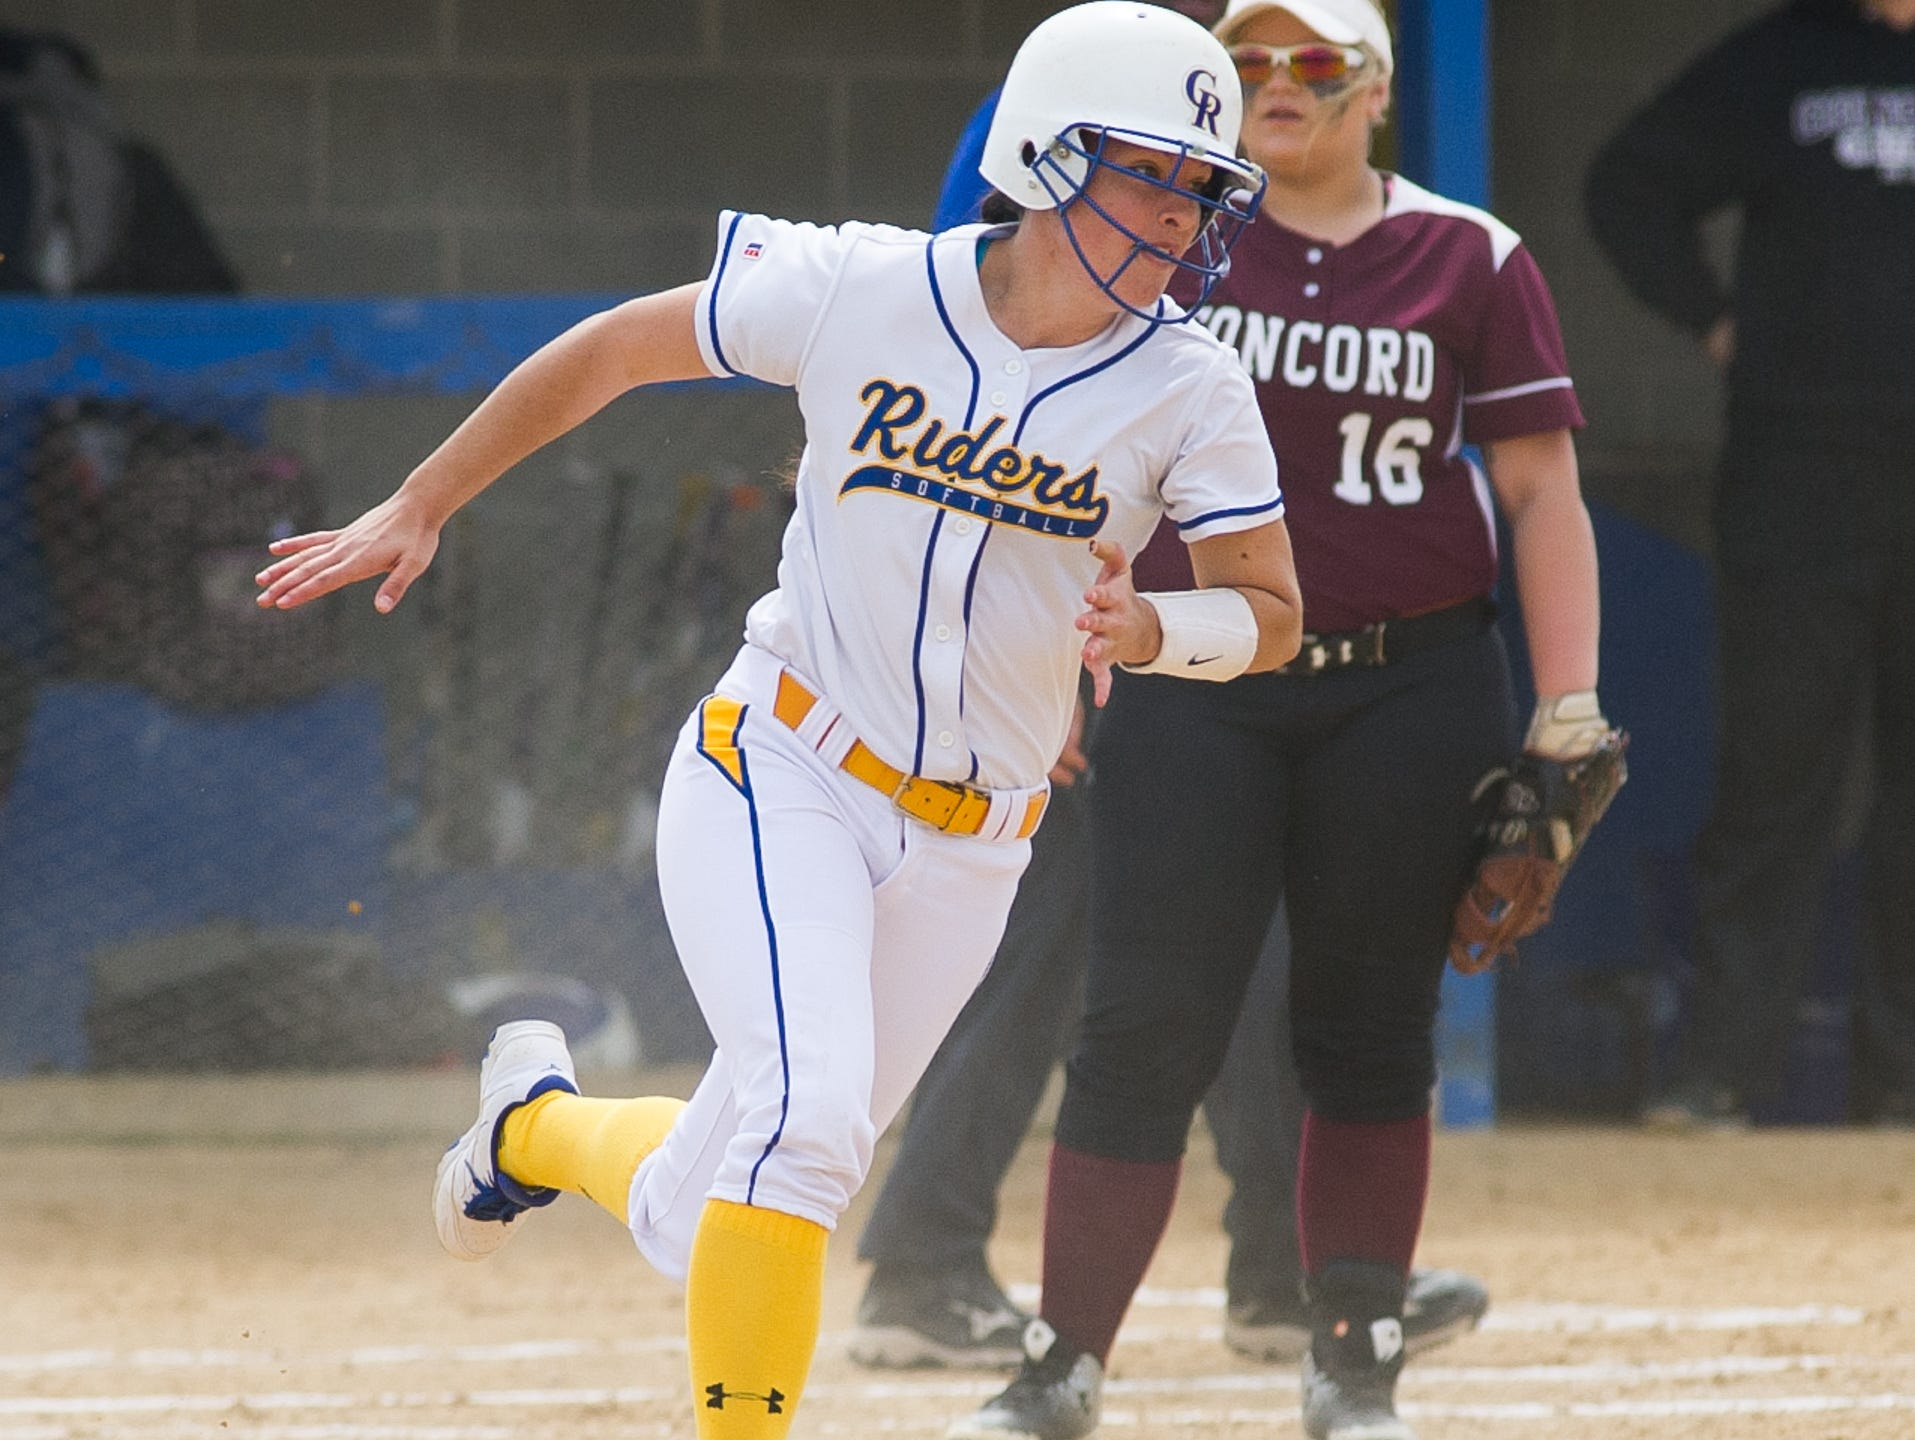 Caesar Rodney's Alexis Howerin (12) runs the bases after hitting for a triple in their game against Concord.